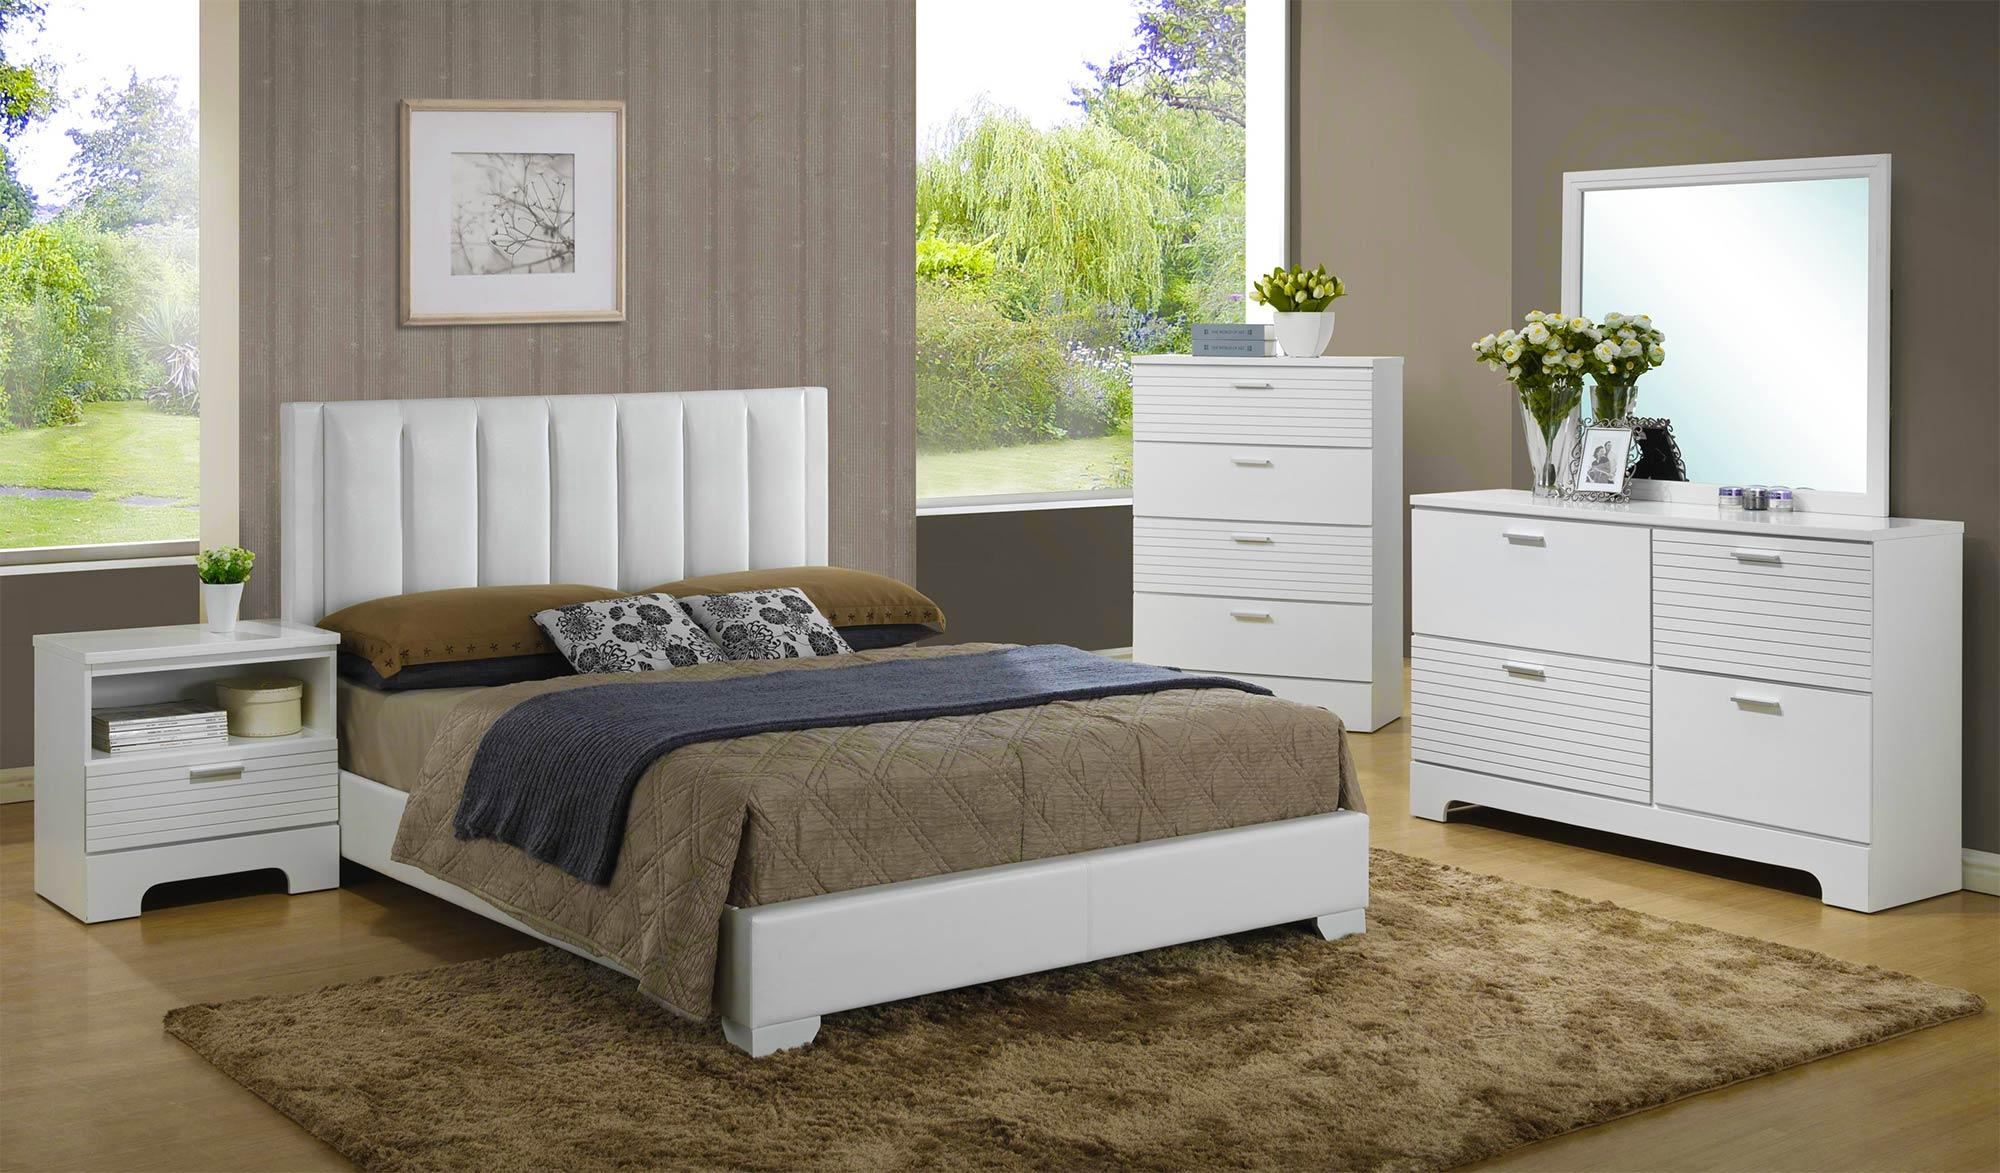 Lifestyle Sami 3-Piece Twin Bedroom Set - Item Number: C3333A-T-3PC